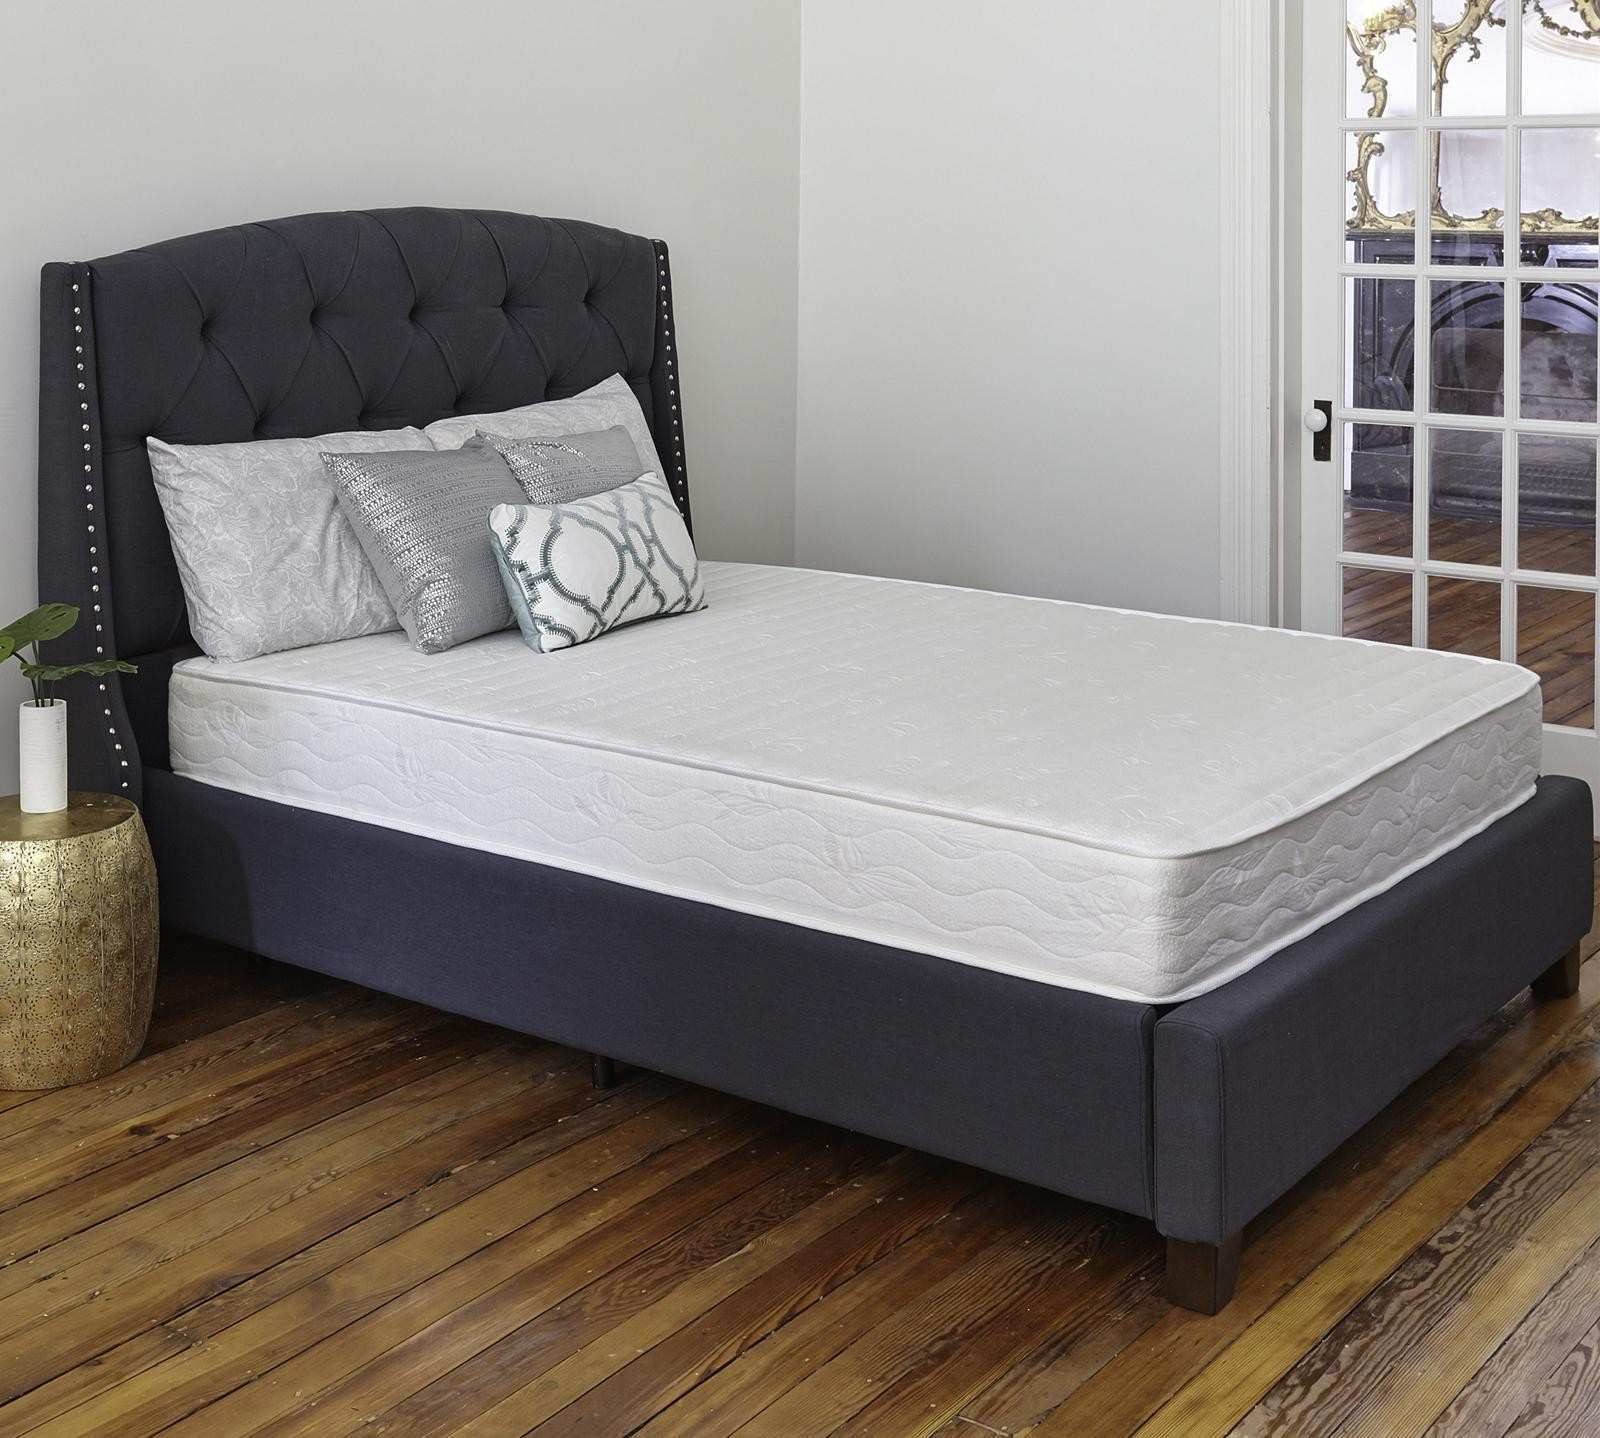 Discount Bed Frames Near Me New Shop Web Specials – Wonderfulhomeideas